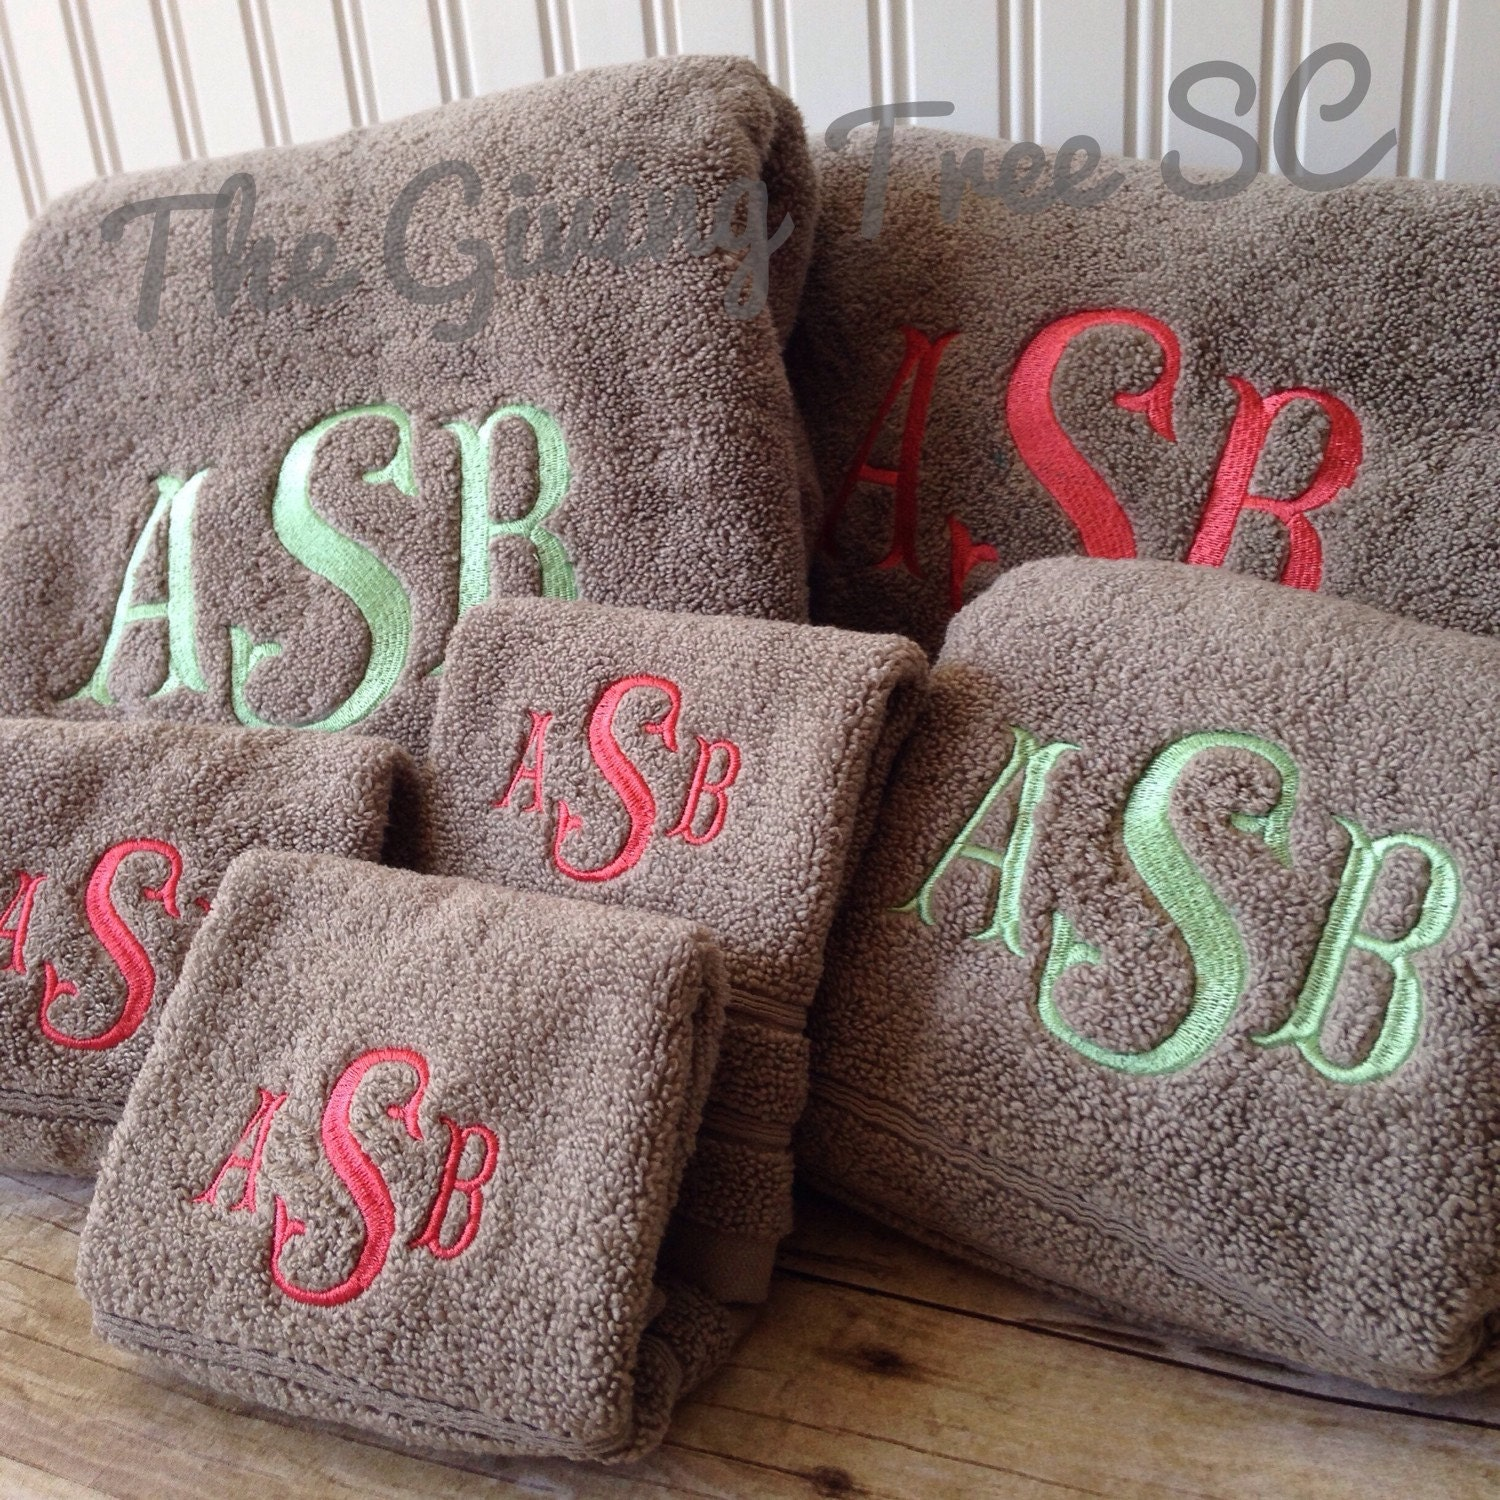 Monogram Towels For Bathroom: Monogrammed Towel Set 4 Bath Towels Embroidered Towels